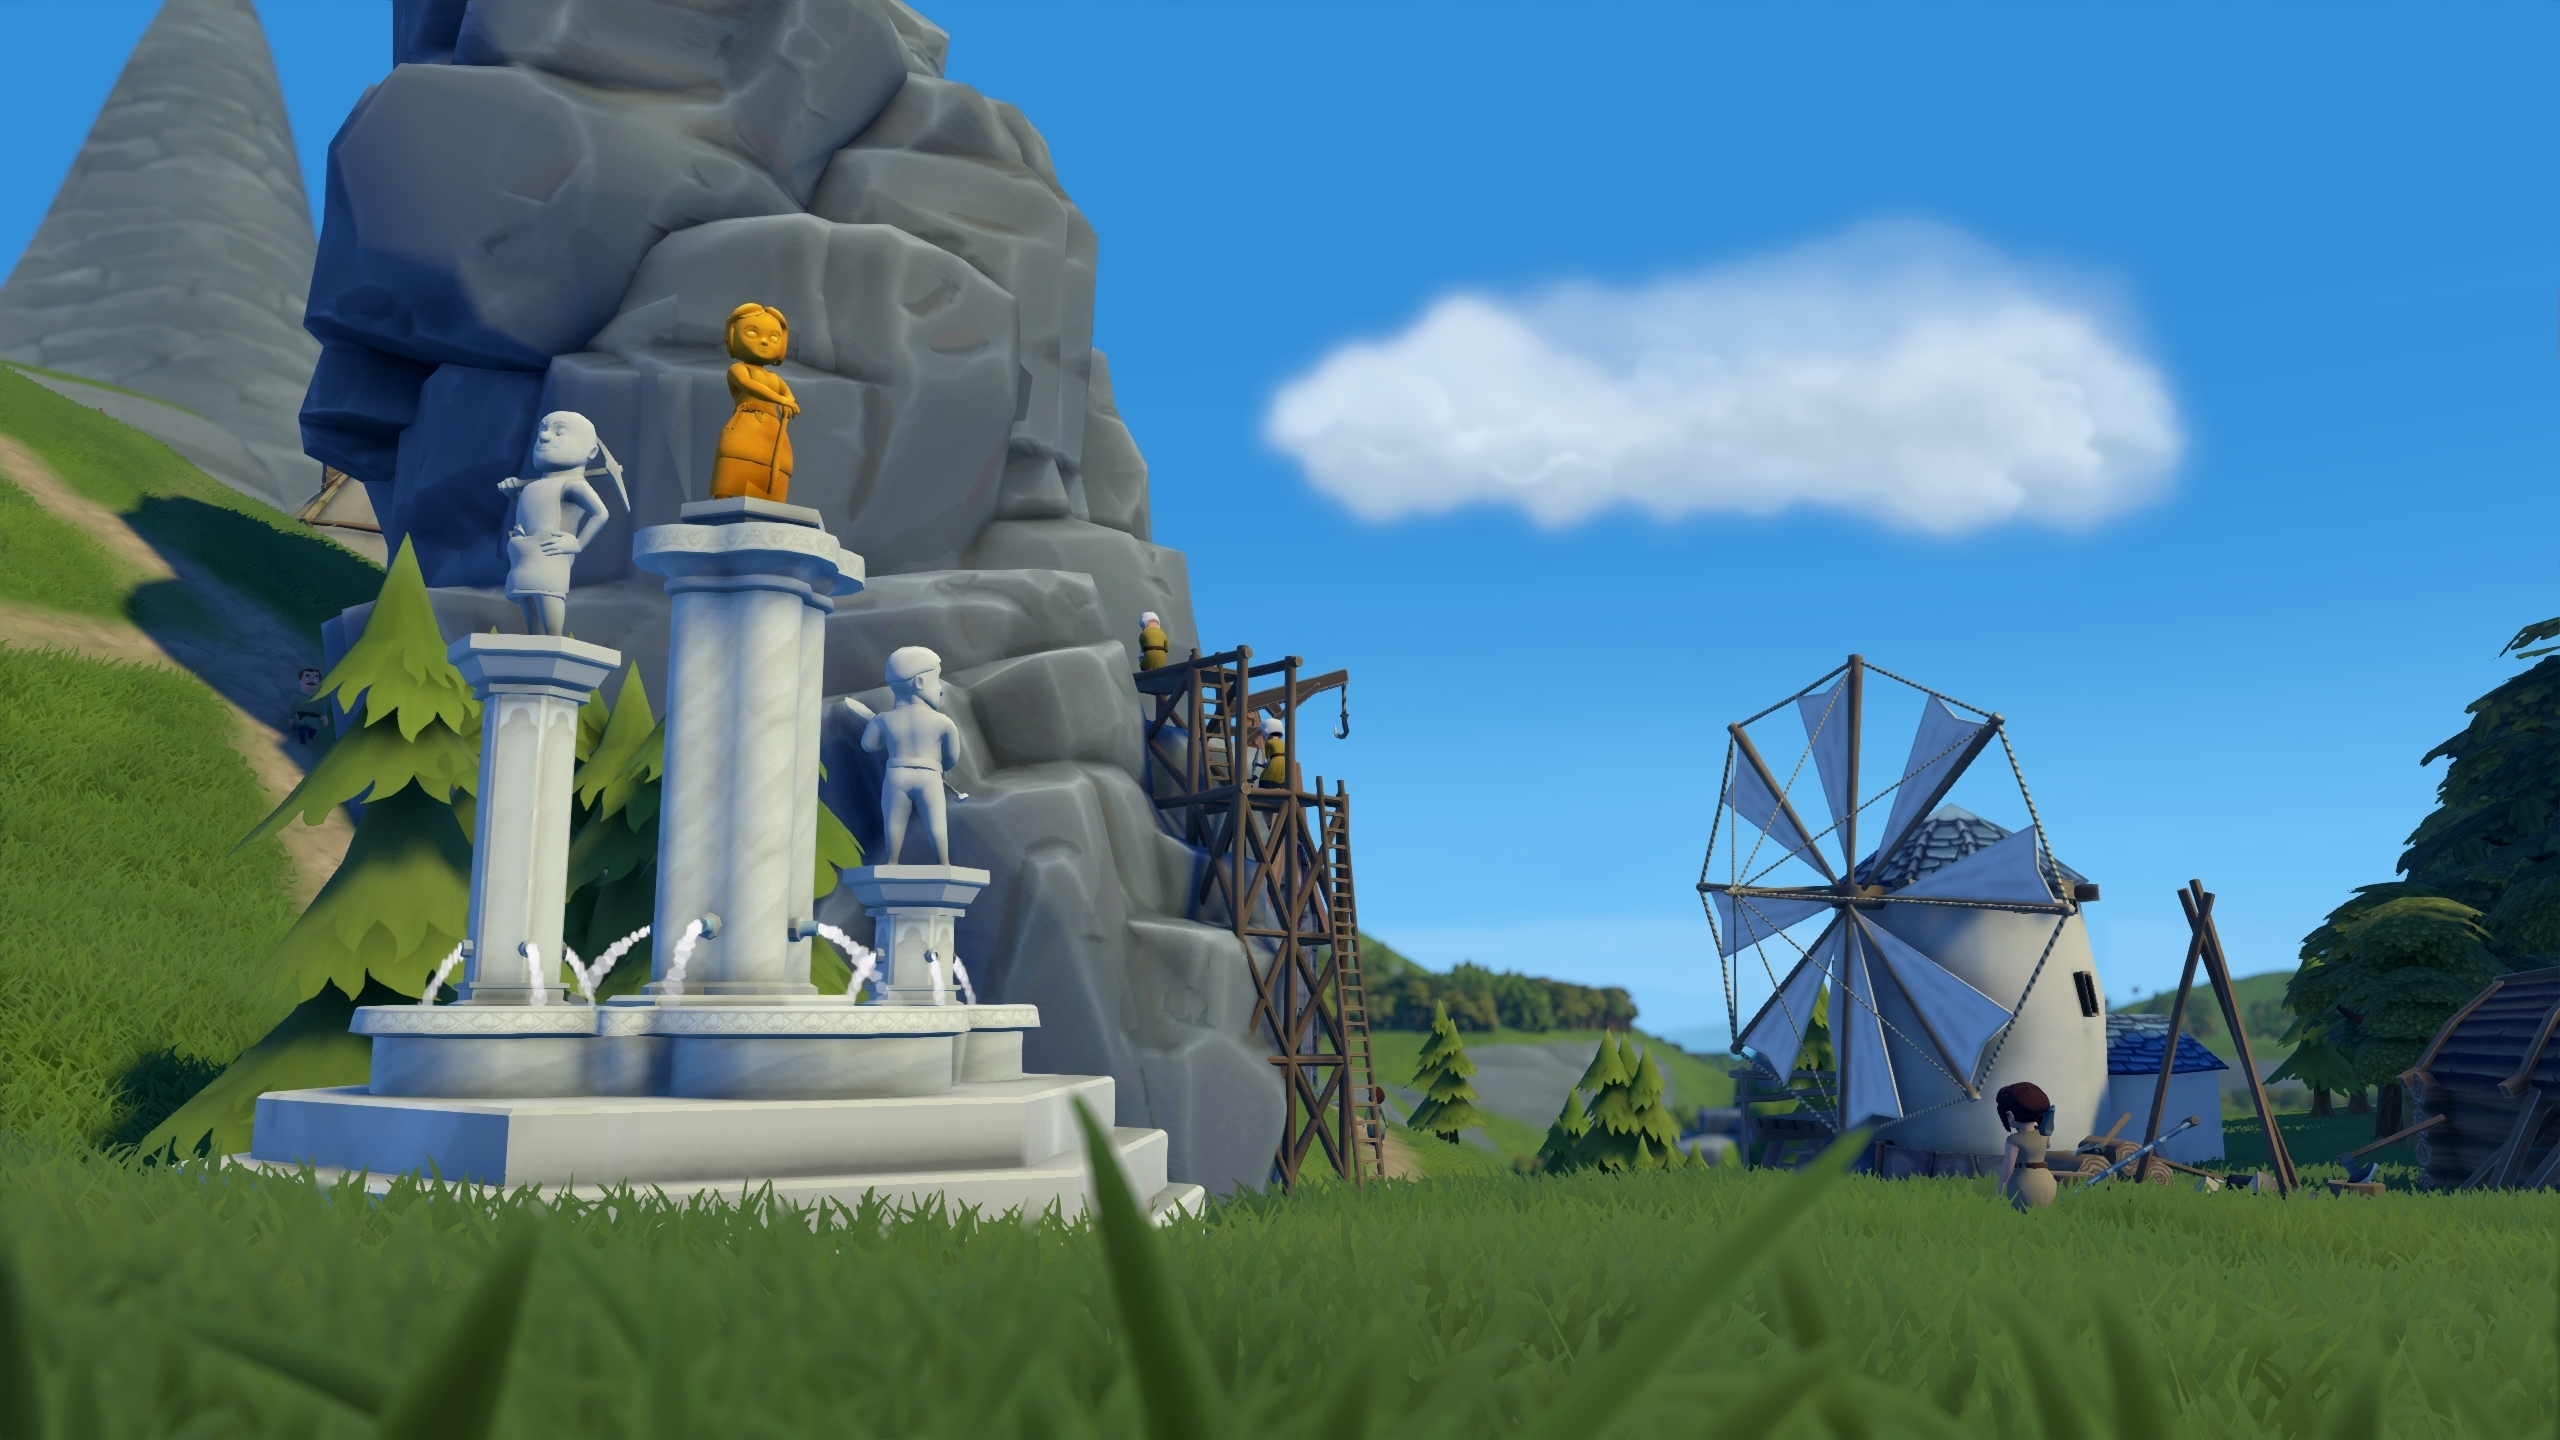 A screenshot of an impressive, three tiered statue from Foundation, celebrating the achievements of workers in the village. The figures on the statue are of a man with a mining pickaxe, a women with an axe and a man with a shovel. Small fountains adorn the base of the statue.